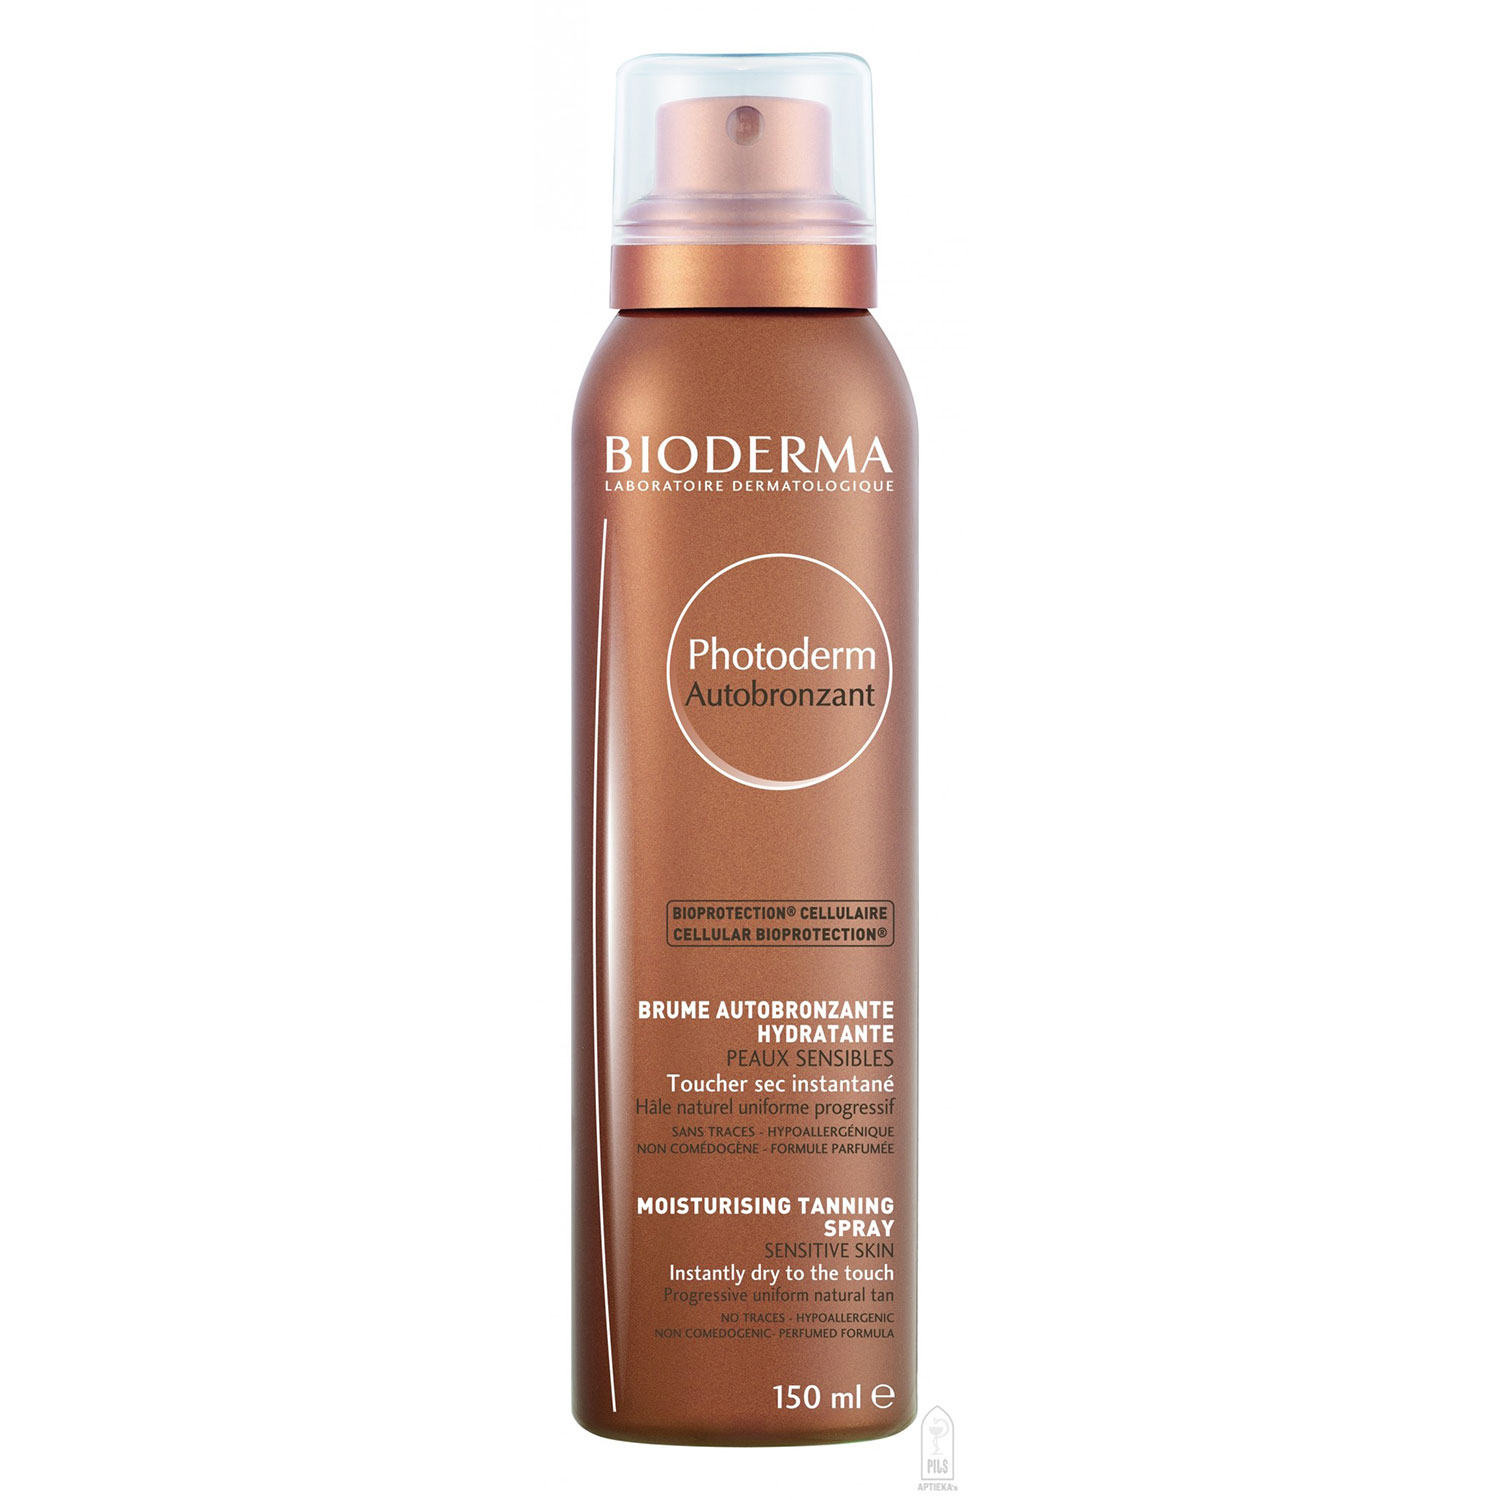 SHOP THIS →   Photoderm autobronzant 150 ml